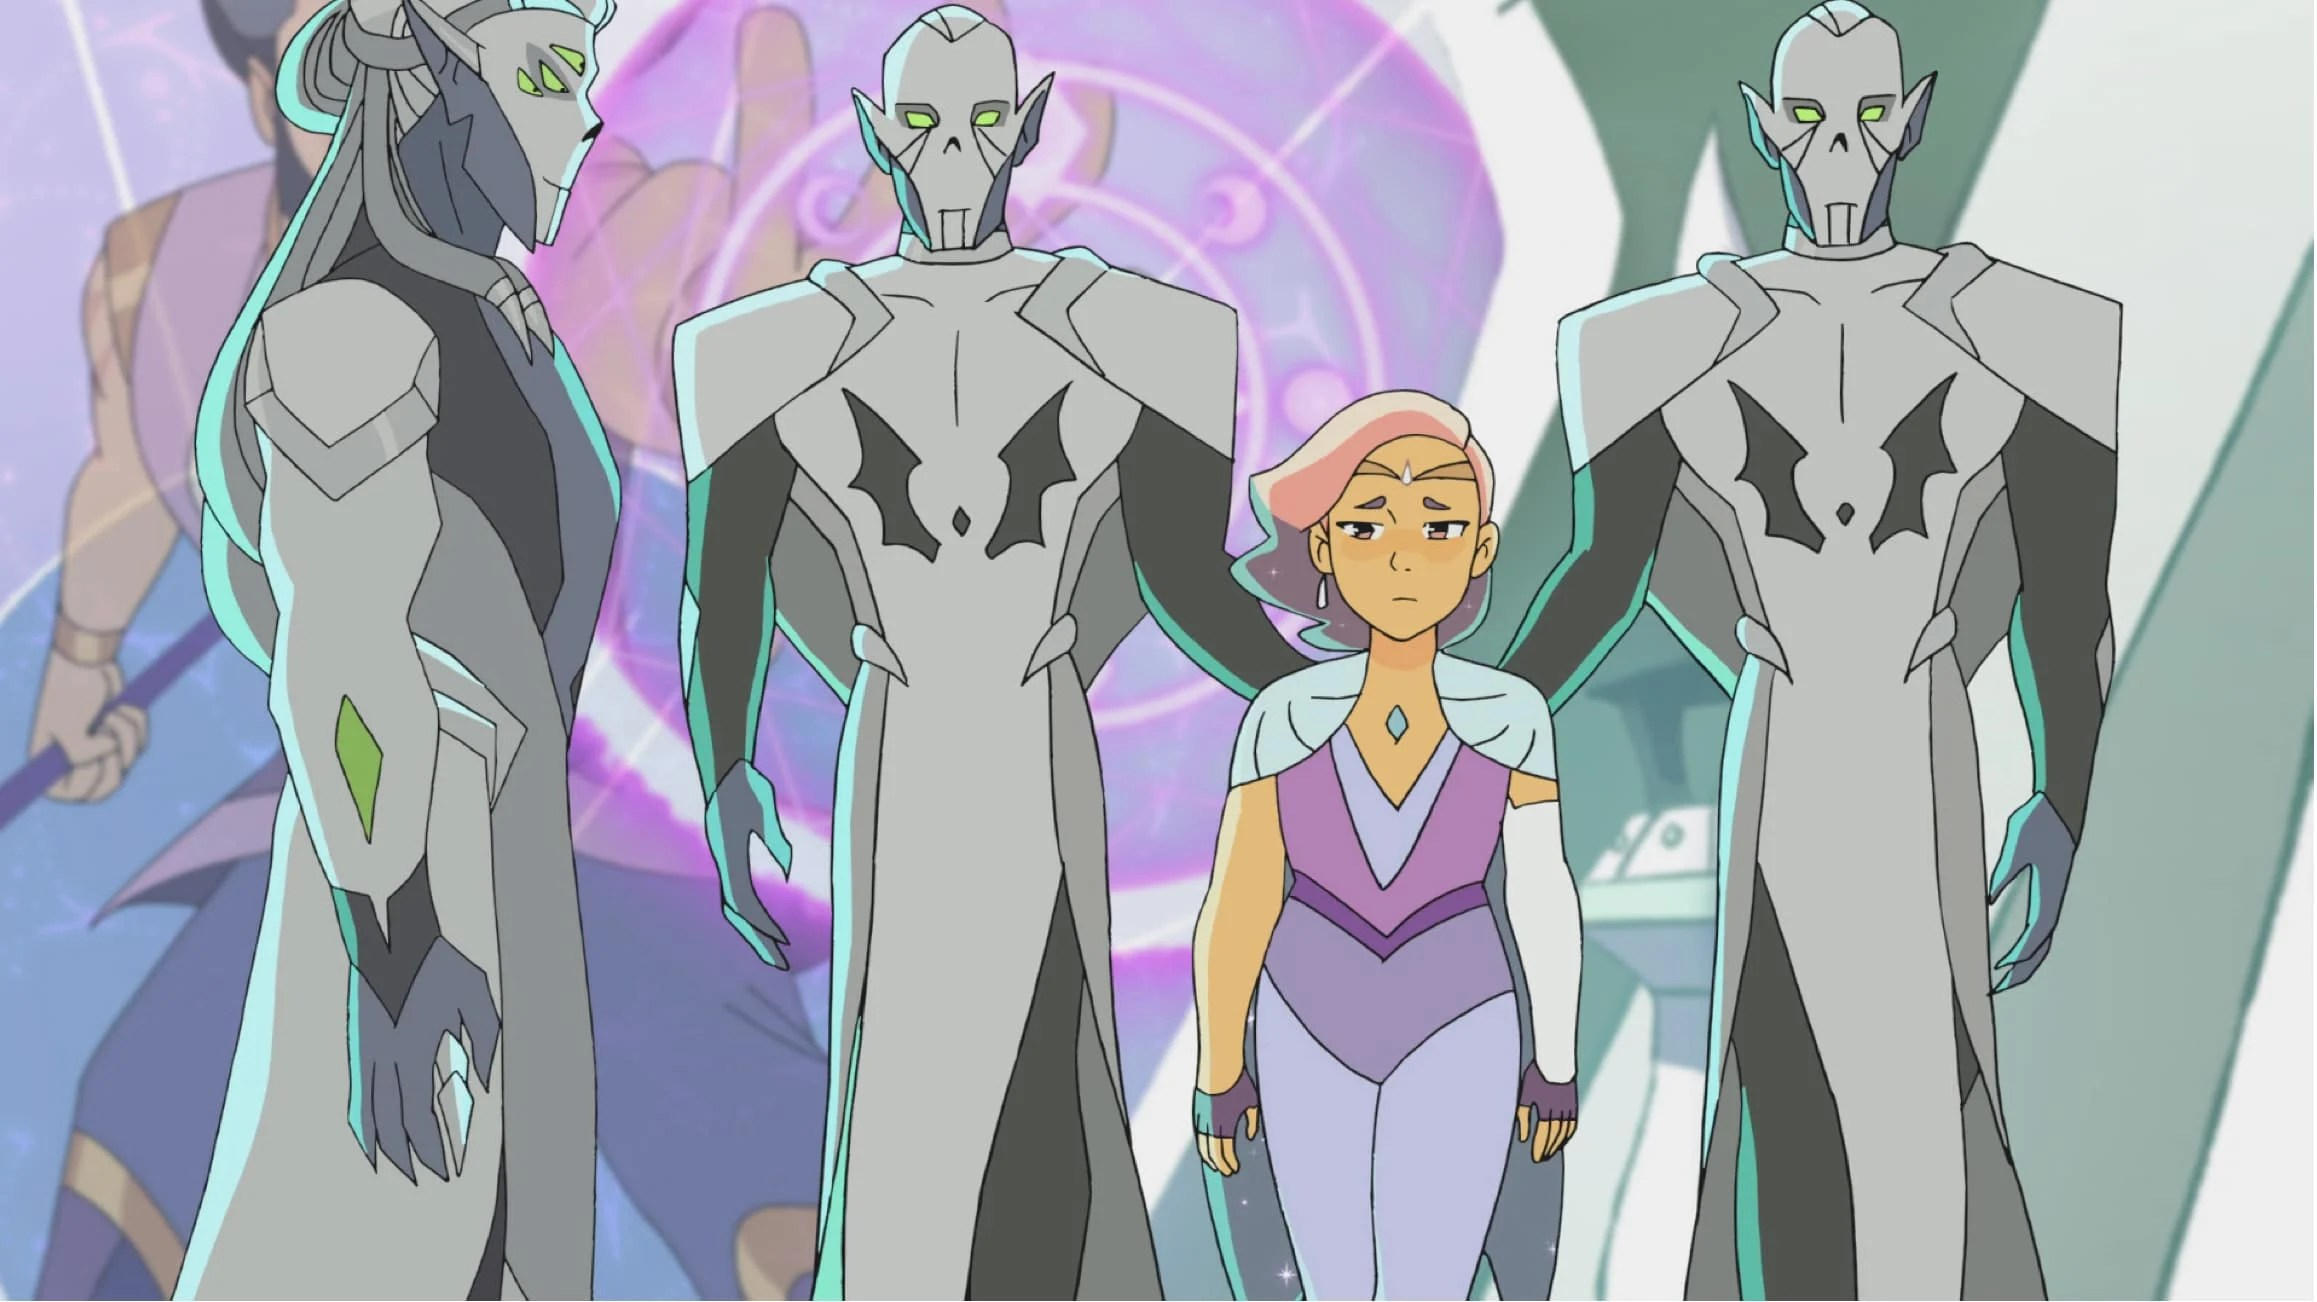 She-Ra and the Princesses of Power Final Season Gaurd. In season 5, the ruthless Horde Prime has arrived and without the Sword of Protection and She-Ra, the Rebellion are facing their toughest challenge yet. Available on Netflix May 8th, 2020.